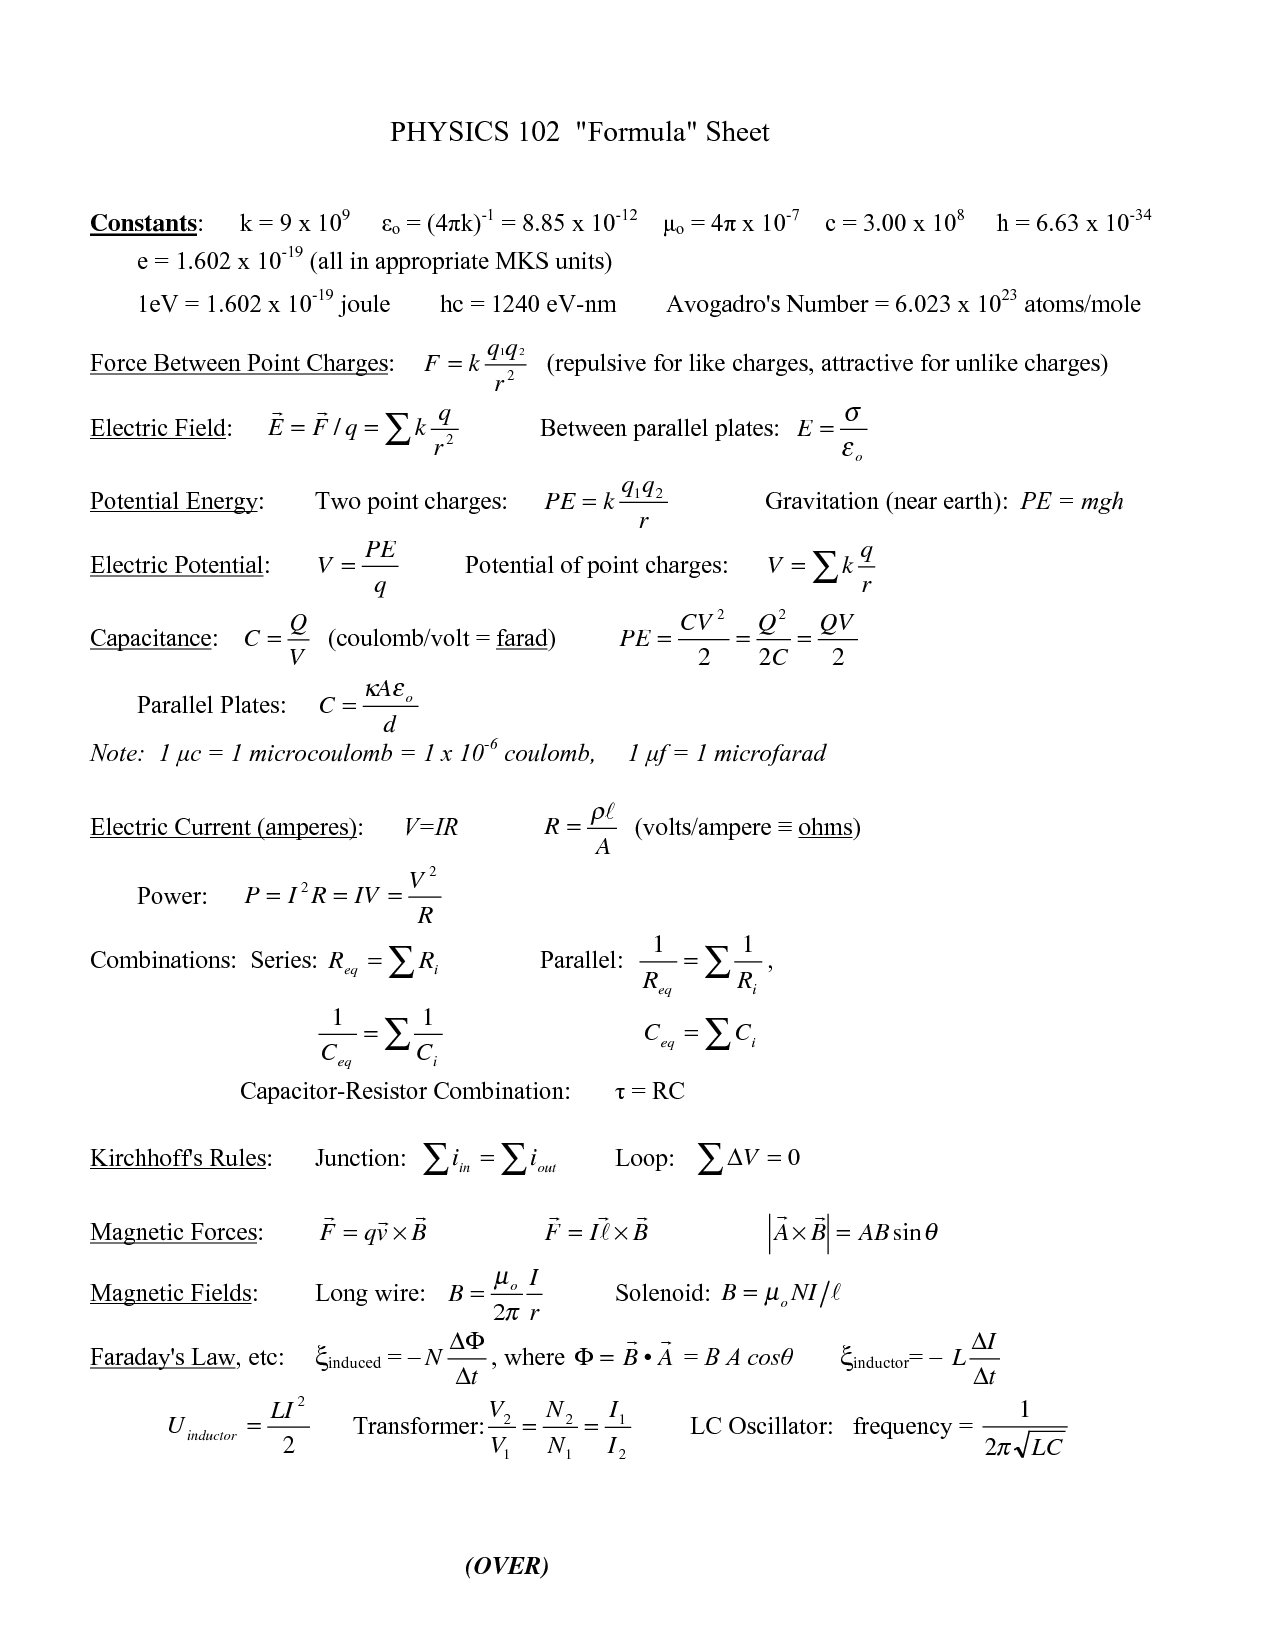 Physics 2 Formulas. Almost every formula you need.